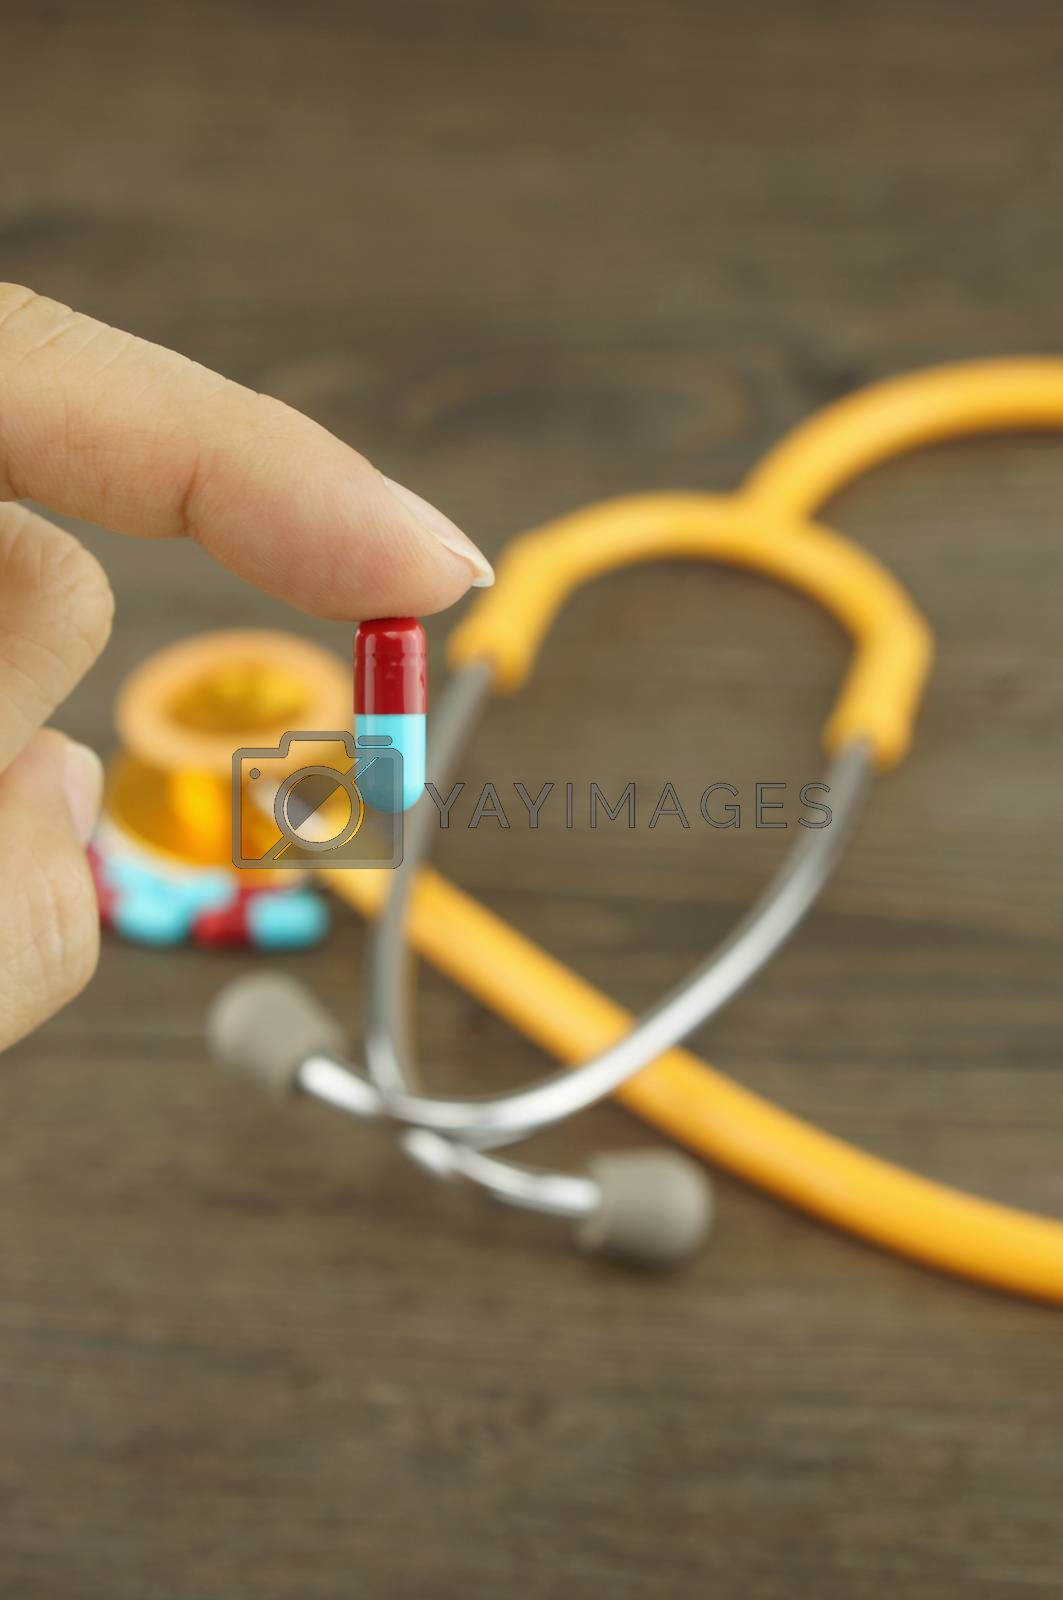 Royalty free image of Holding medicine by ninun